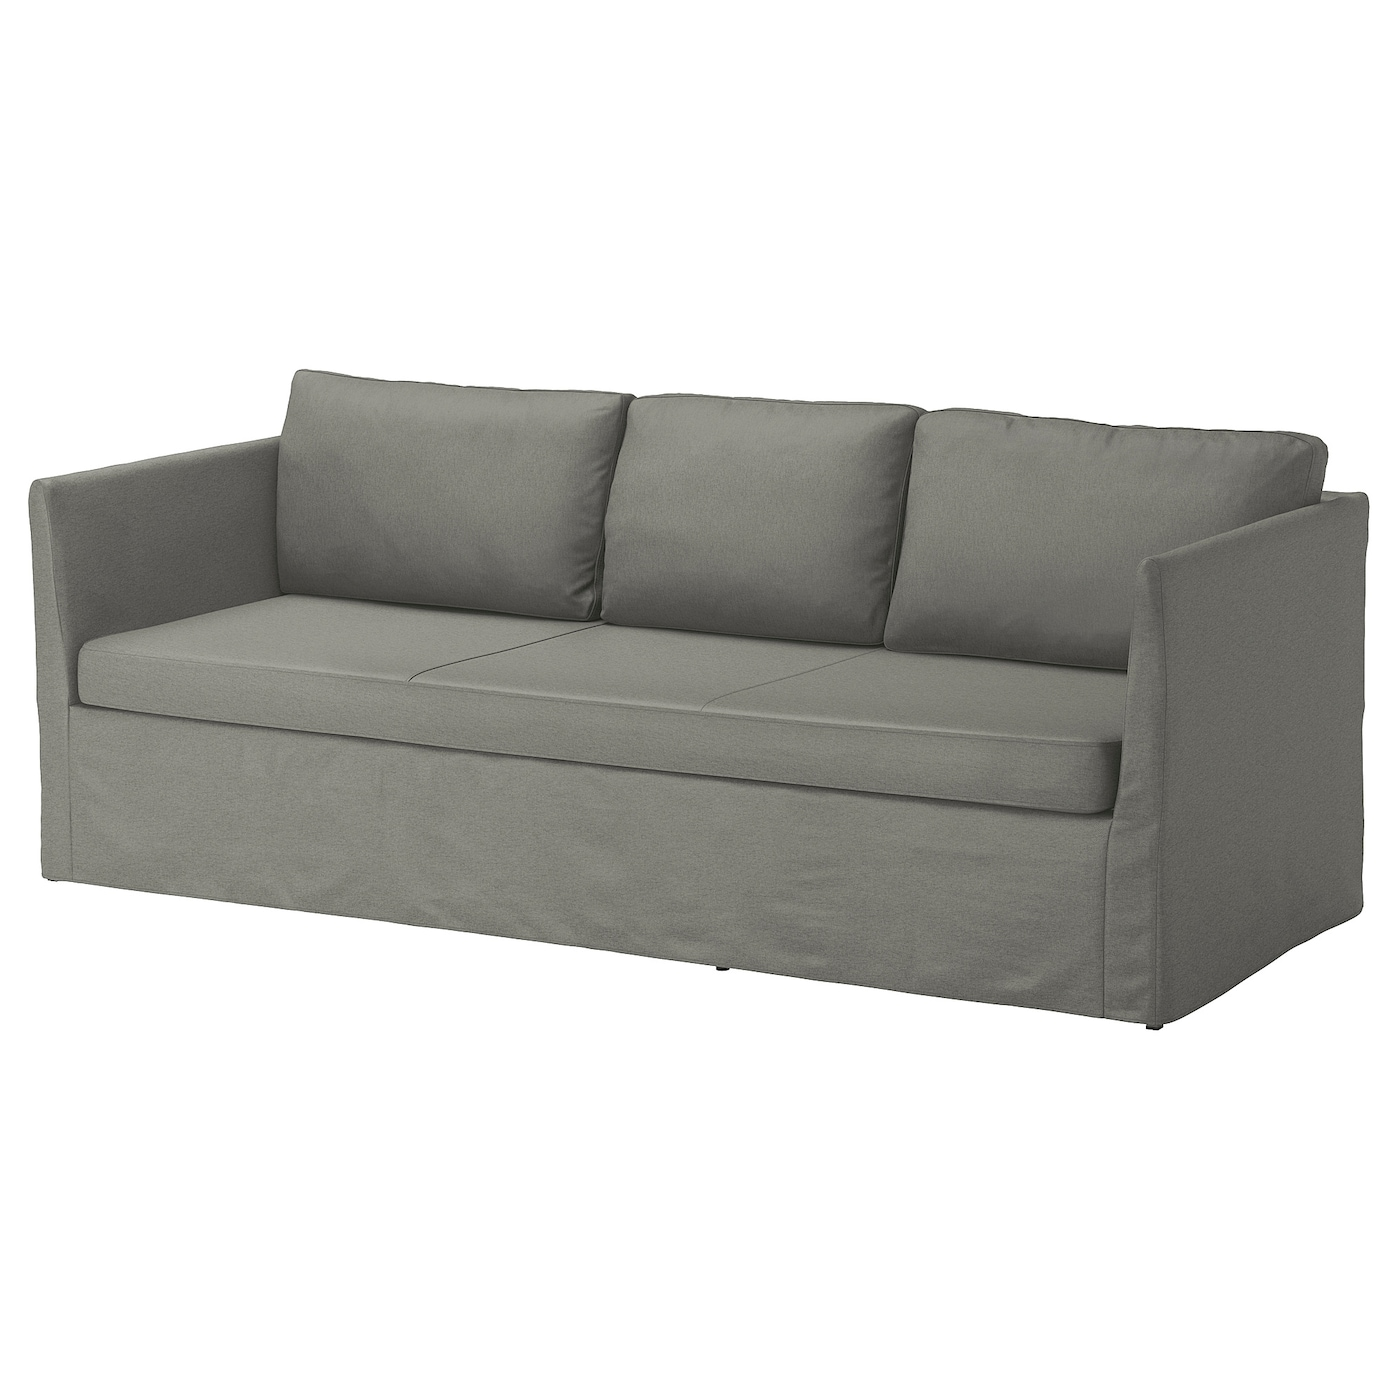 IKEA BRÅTHULT 3-seat sofa You sit comfortably thanks to the resilient foam and springy seat.